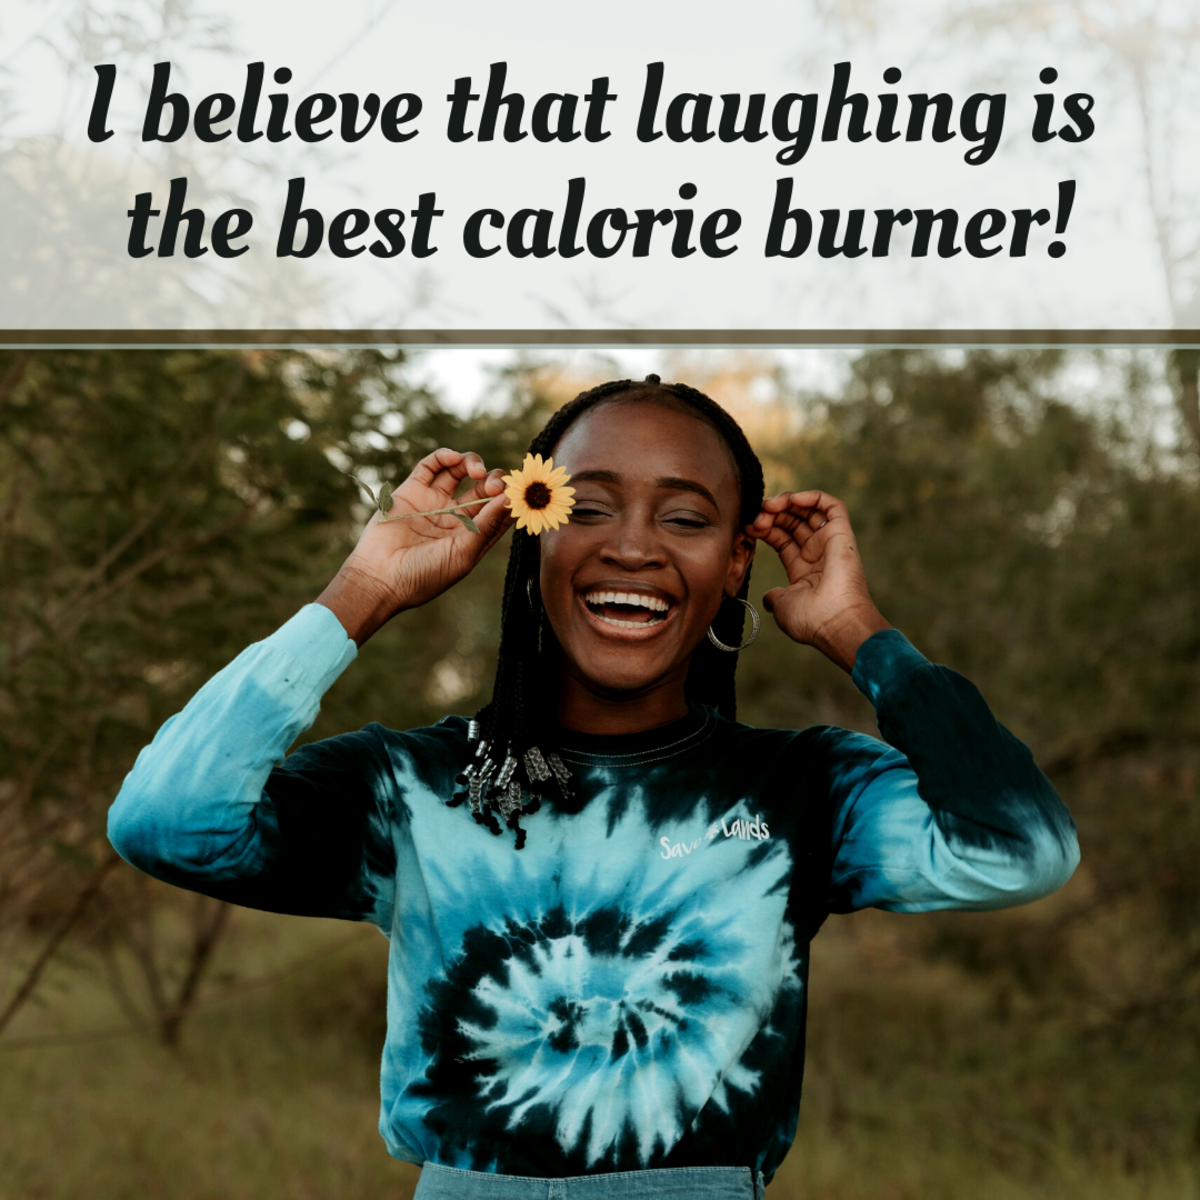 Laughter is the best medicine - and it's a good workout, too!